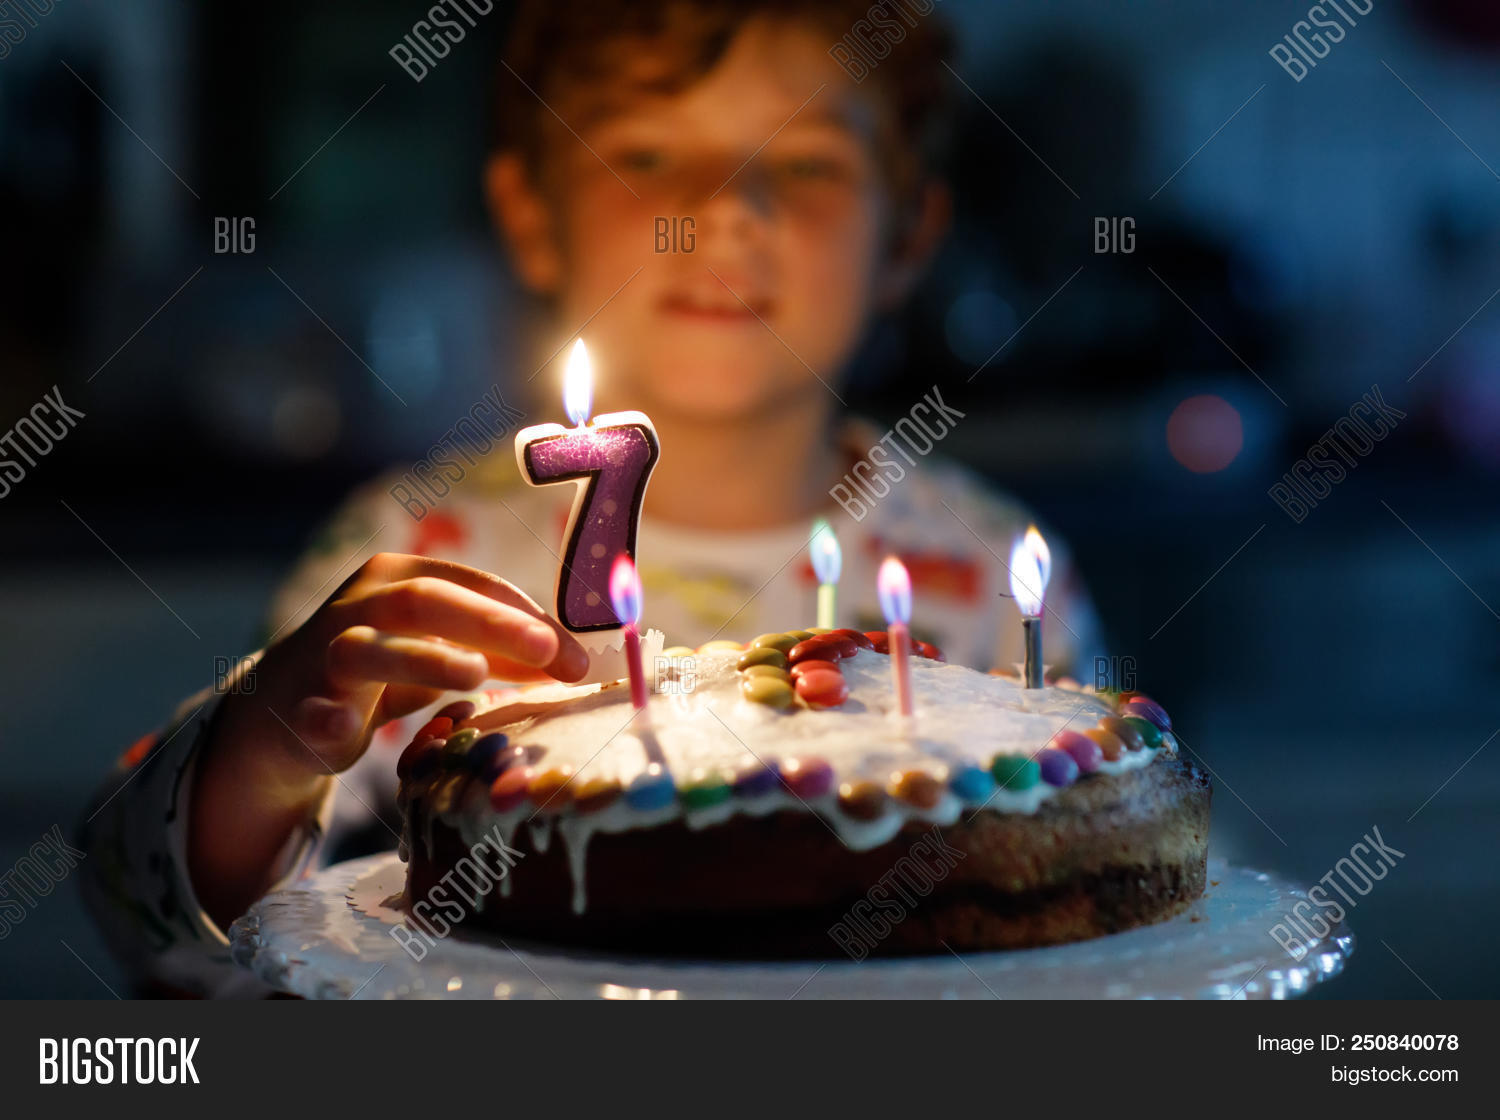 Outstanding Adorable Happy Blond Image Photo Free Trial Bigstock Personalised Birthday Cards Sponlily Jamesorg